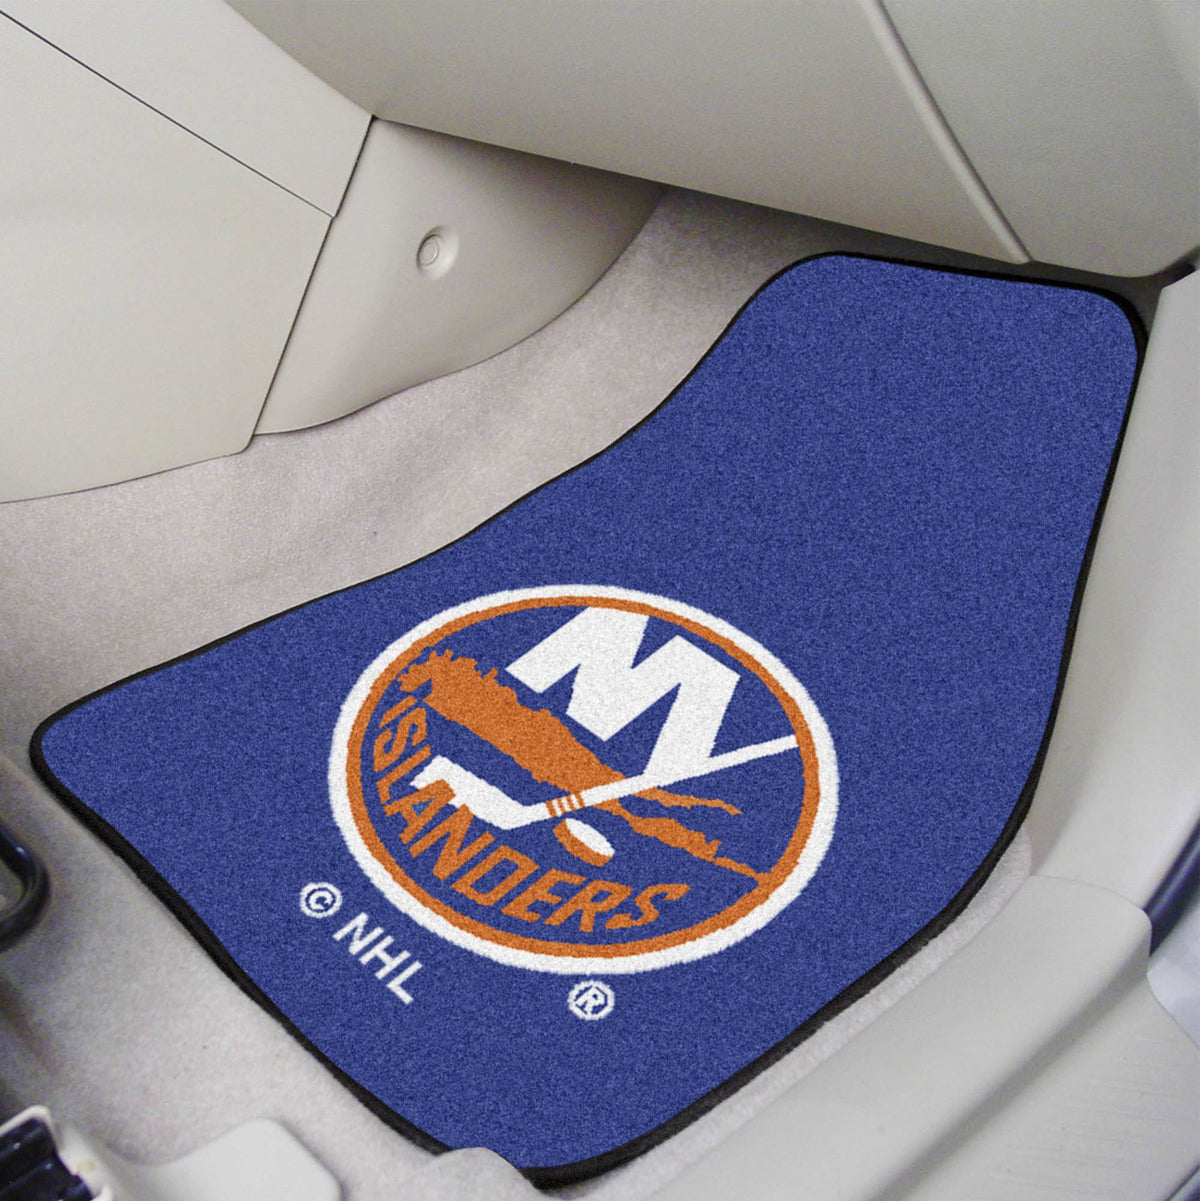 NHL - Carpet Car Mat, 2-Piece Set NHL Mats, Front Car Mats, 2-pc Carpet Car Mat Set, NHL, Auto Fan Mats New York Islanders